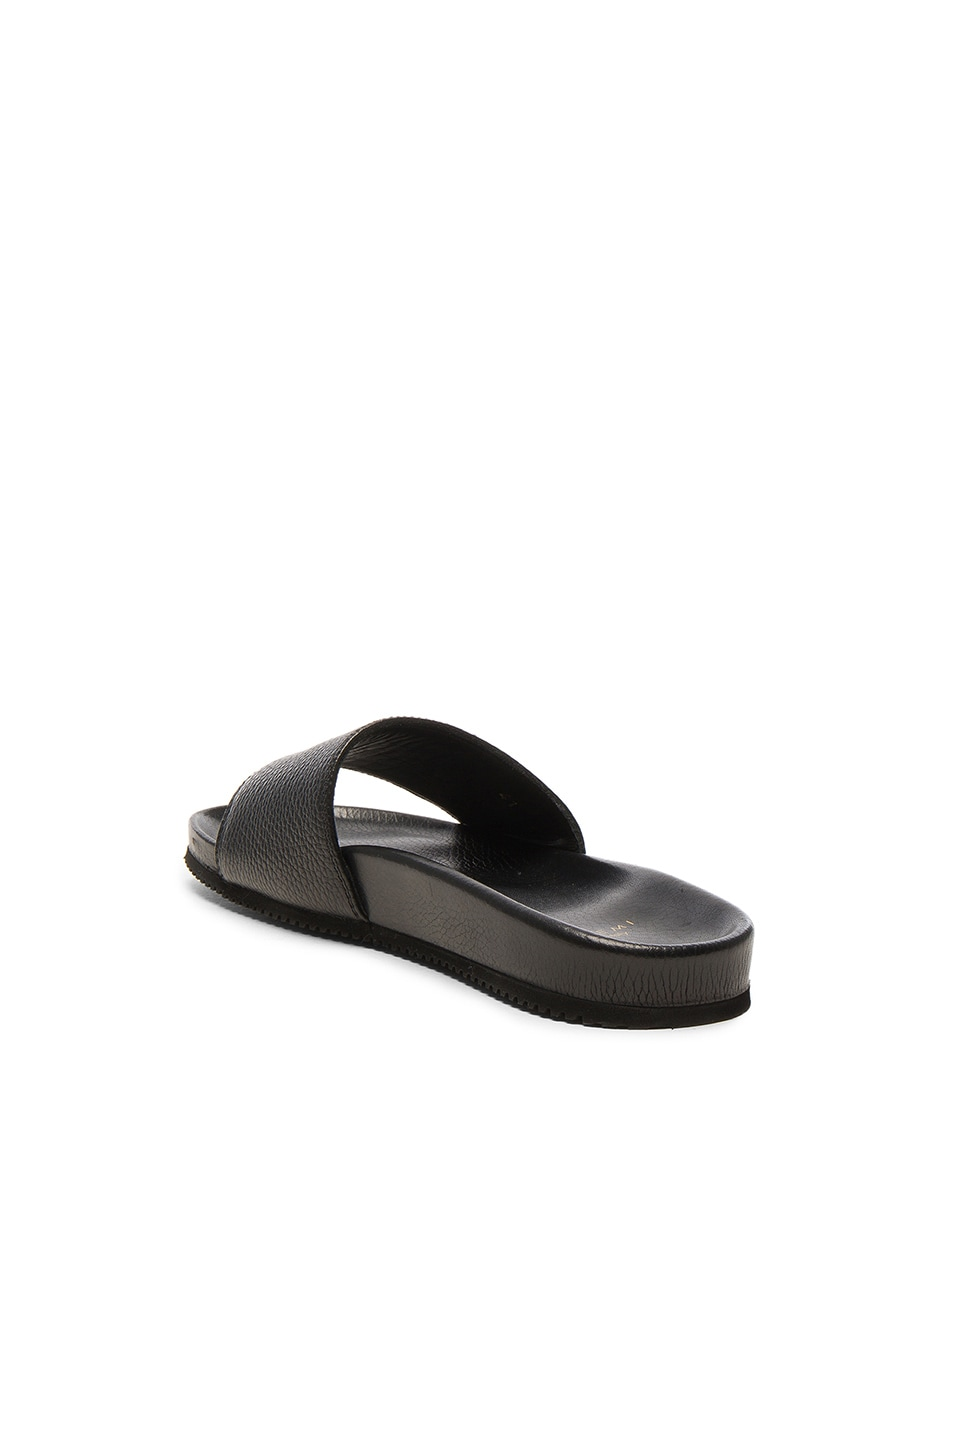 Image 3 of Buscemi Leather Classic Slide Sandals in Black